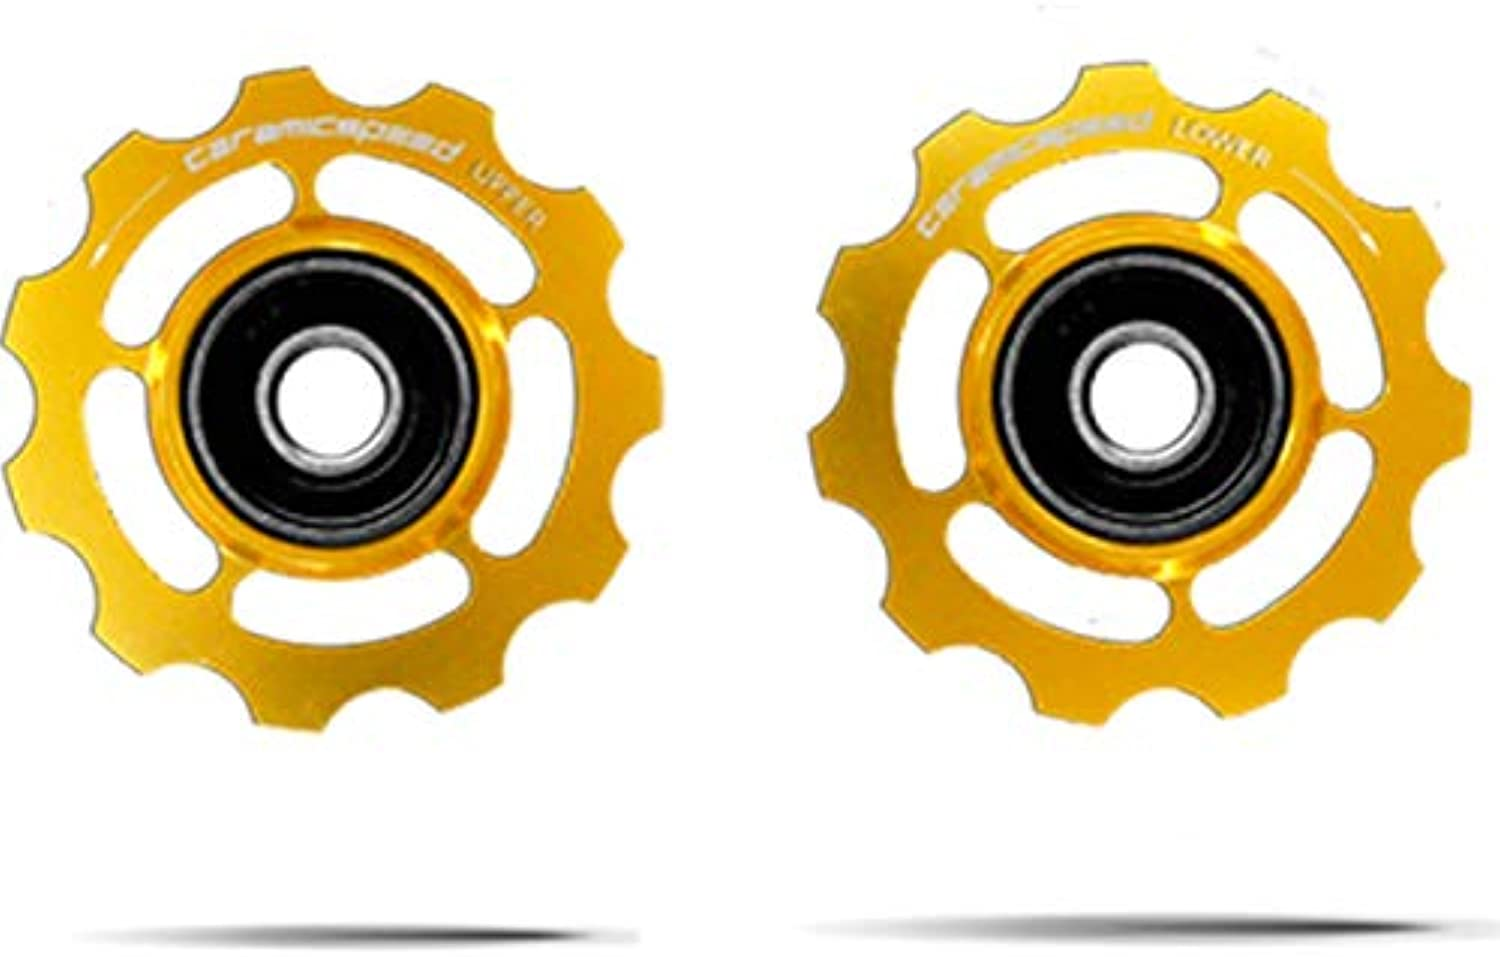 CeramicSpeed 11 Speed Aluminum Pulley Wheels  Limited Edition gold